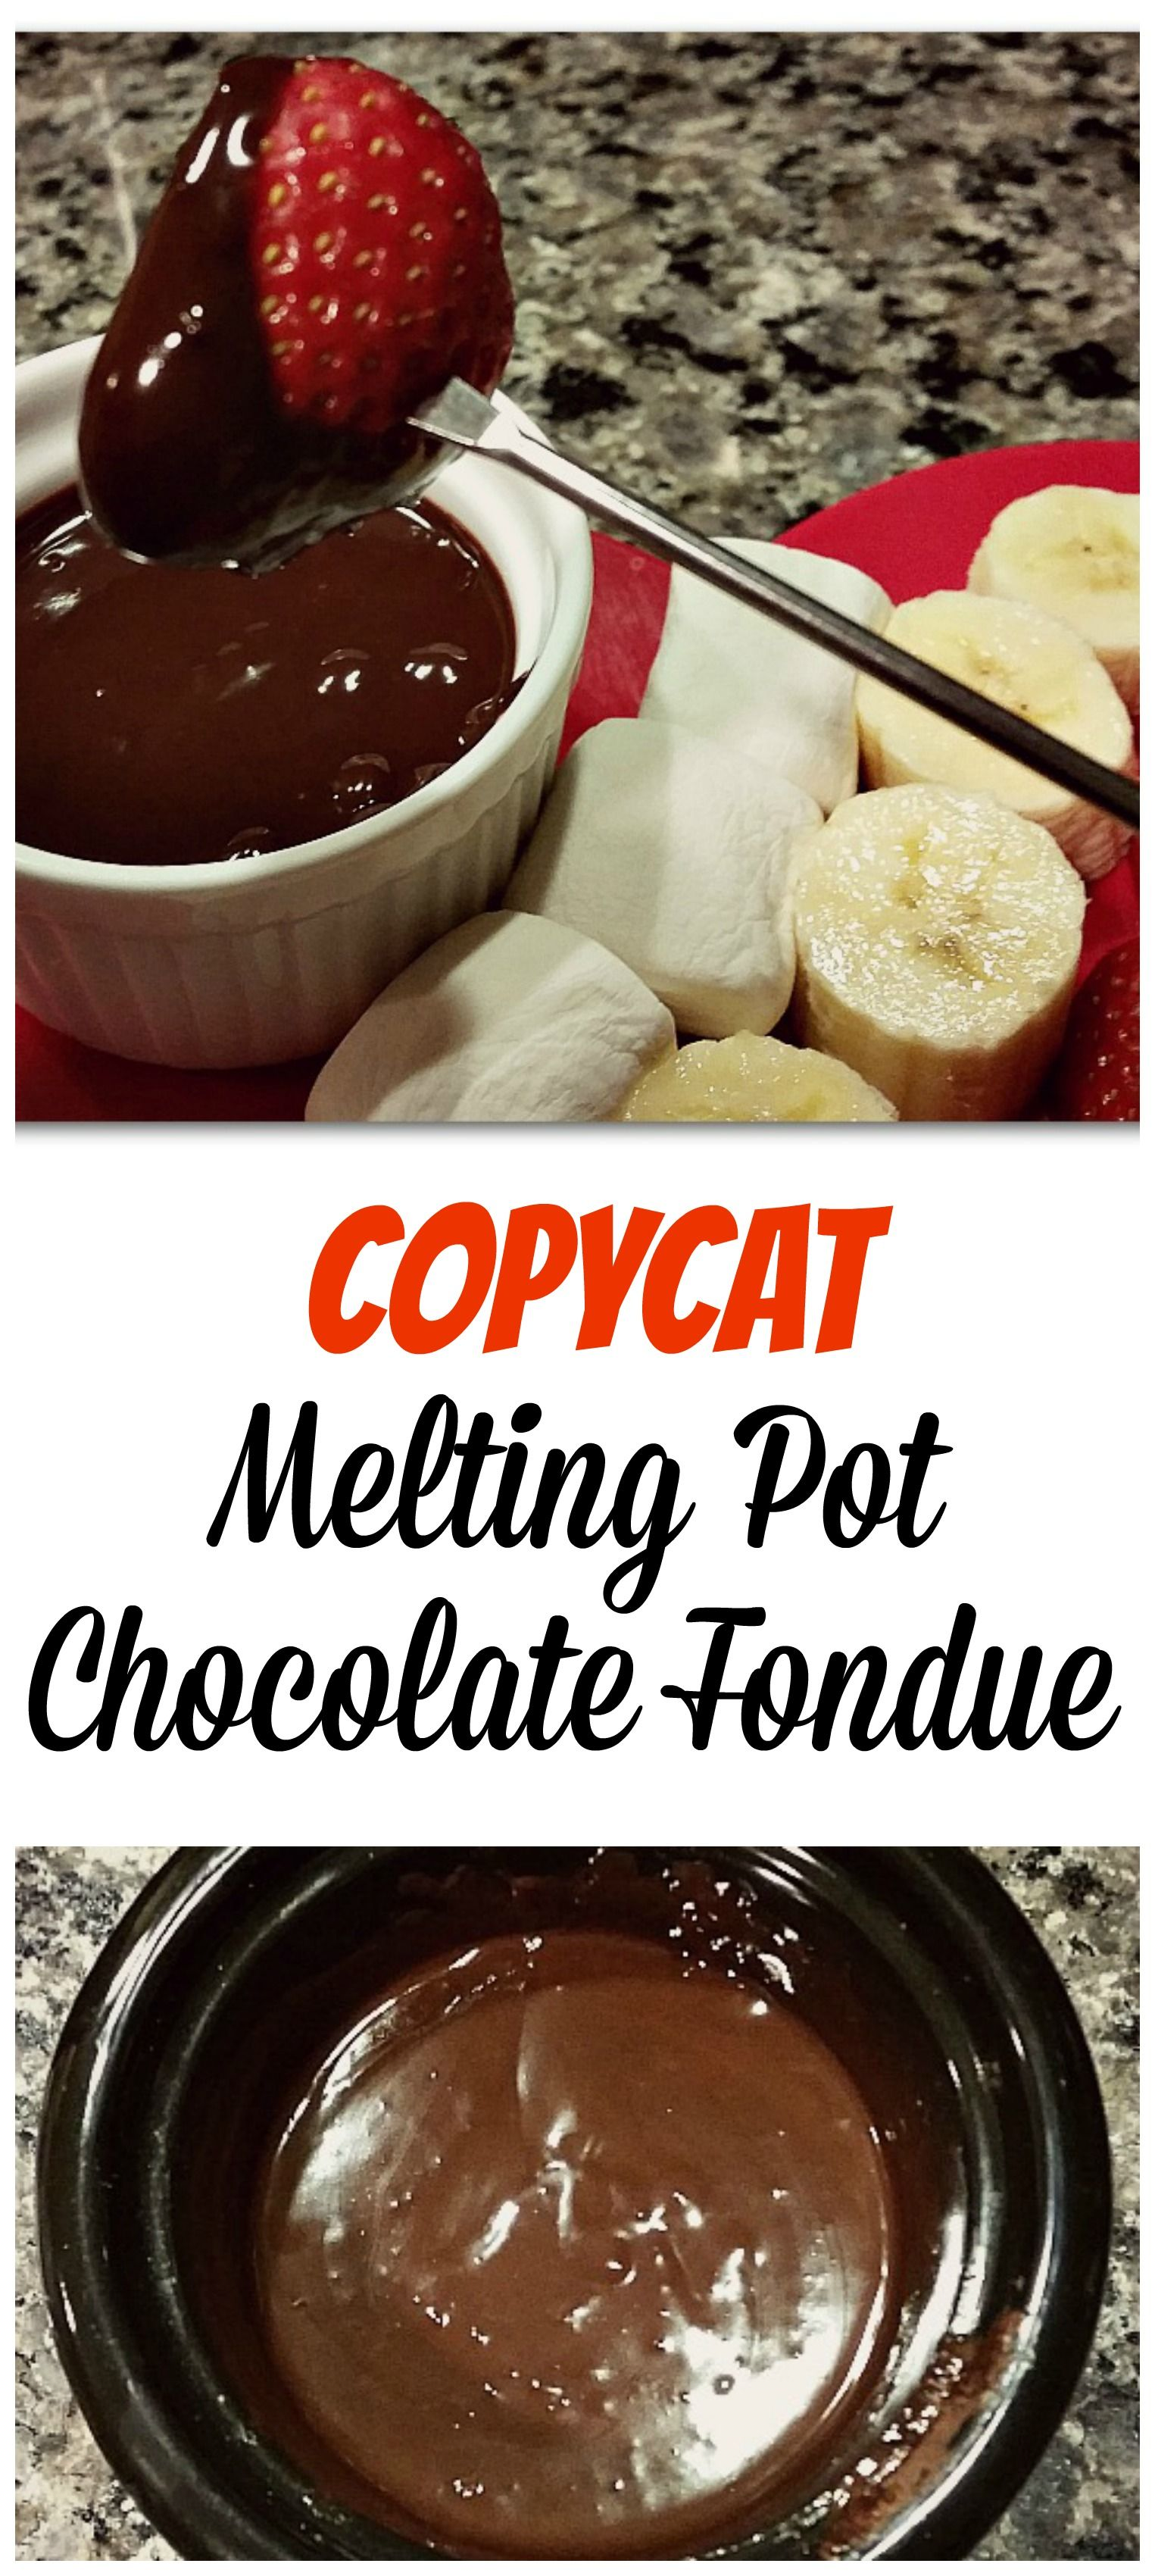 Copycat Melting Pot Chocolate Fondue - In the Slow Cooker ...